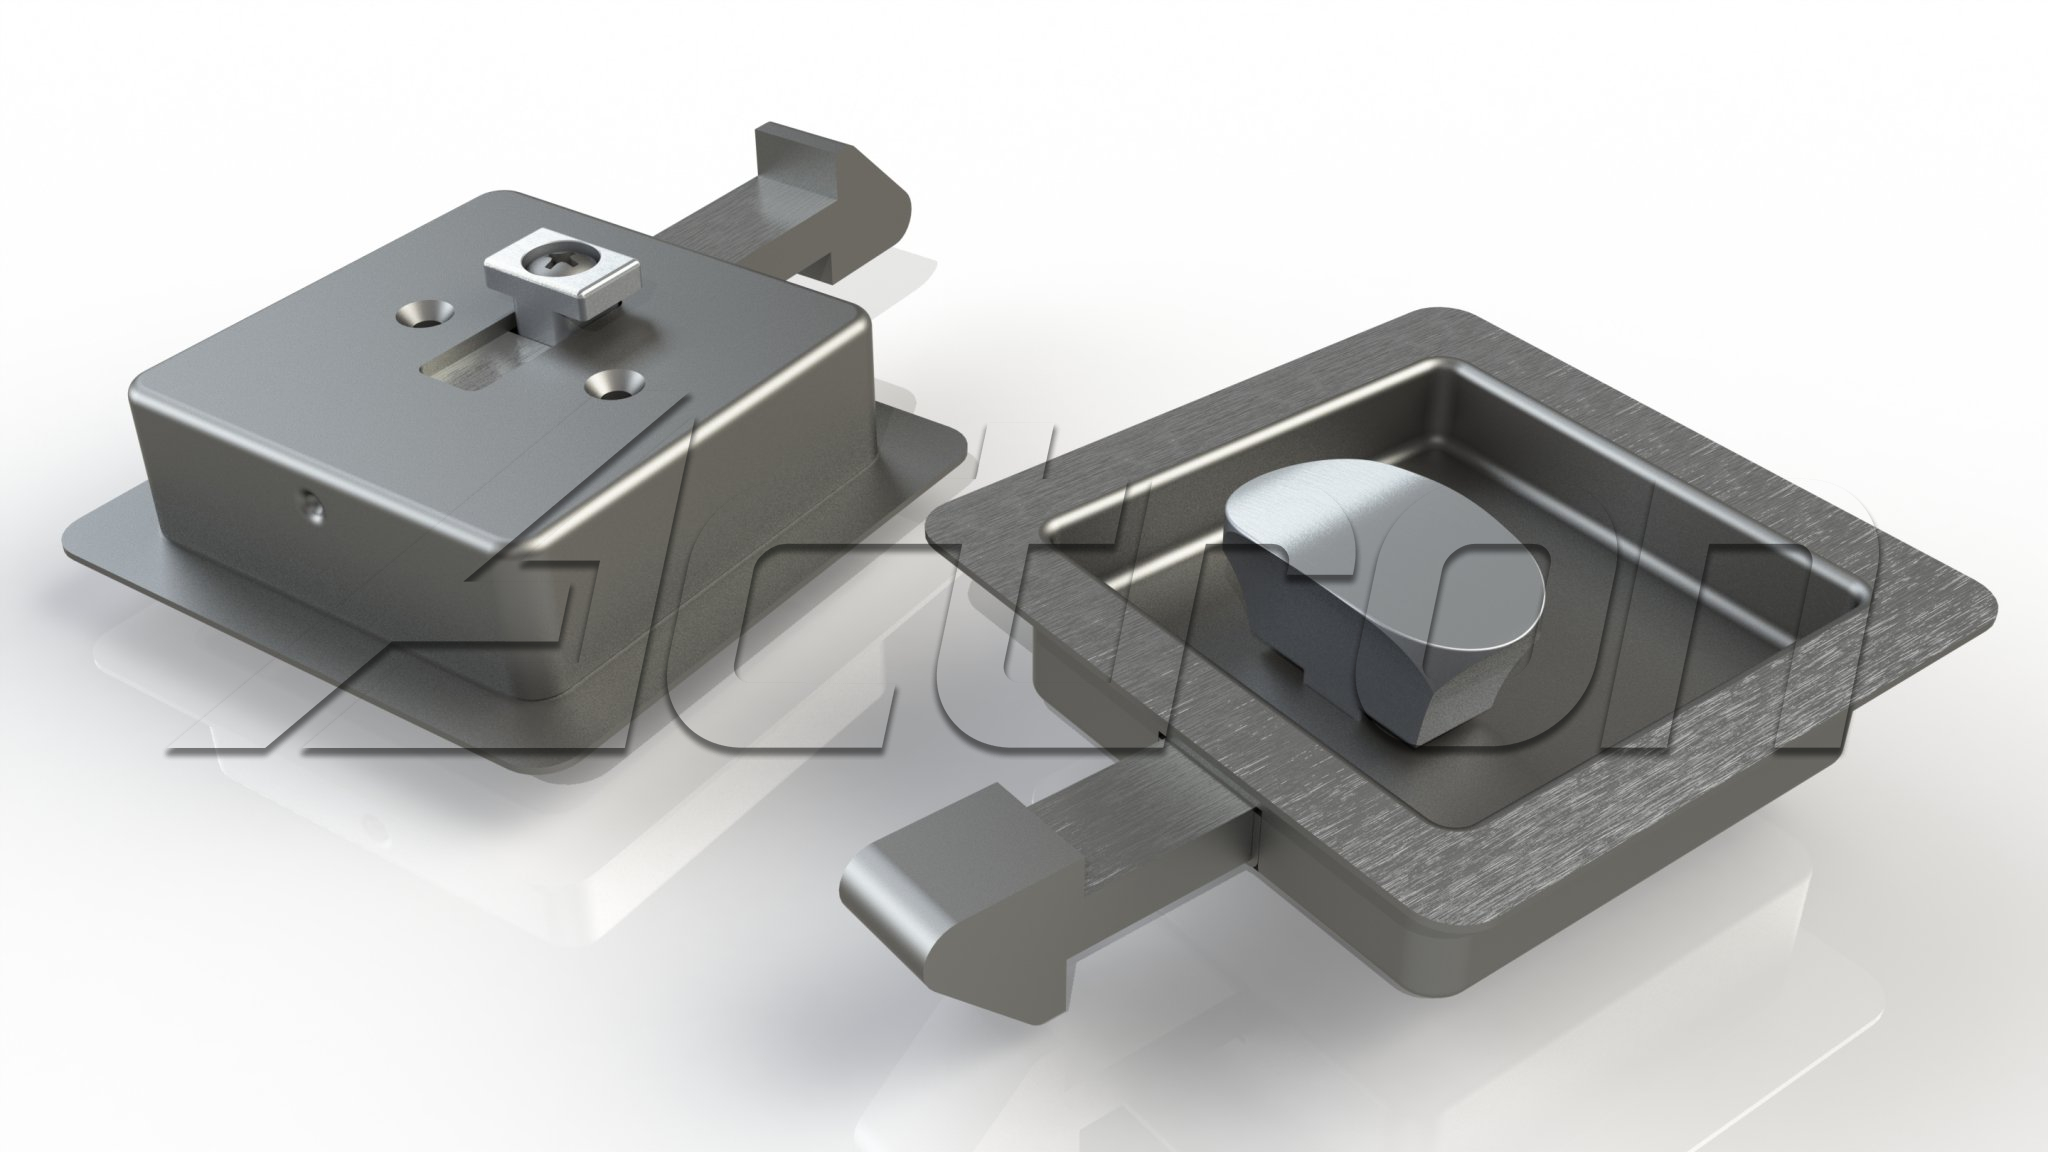 latch-assy-8211-square-double-sided-trunk-door-5322-a27387.jpg